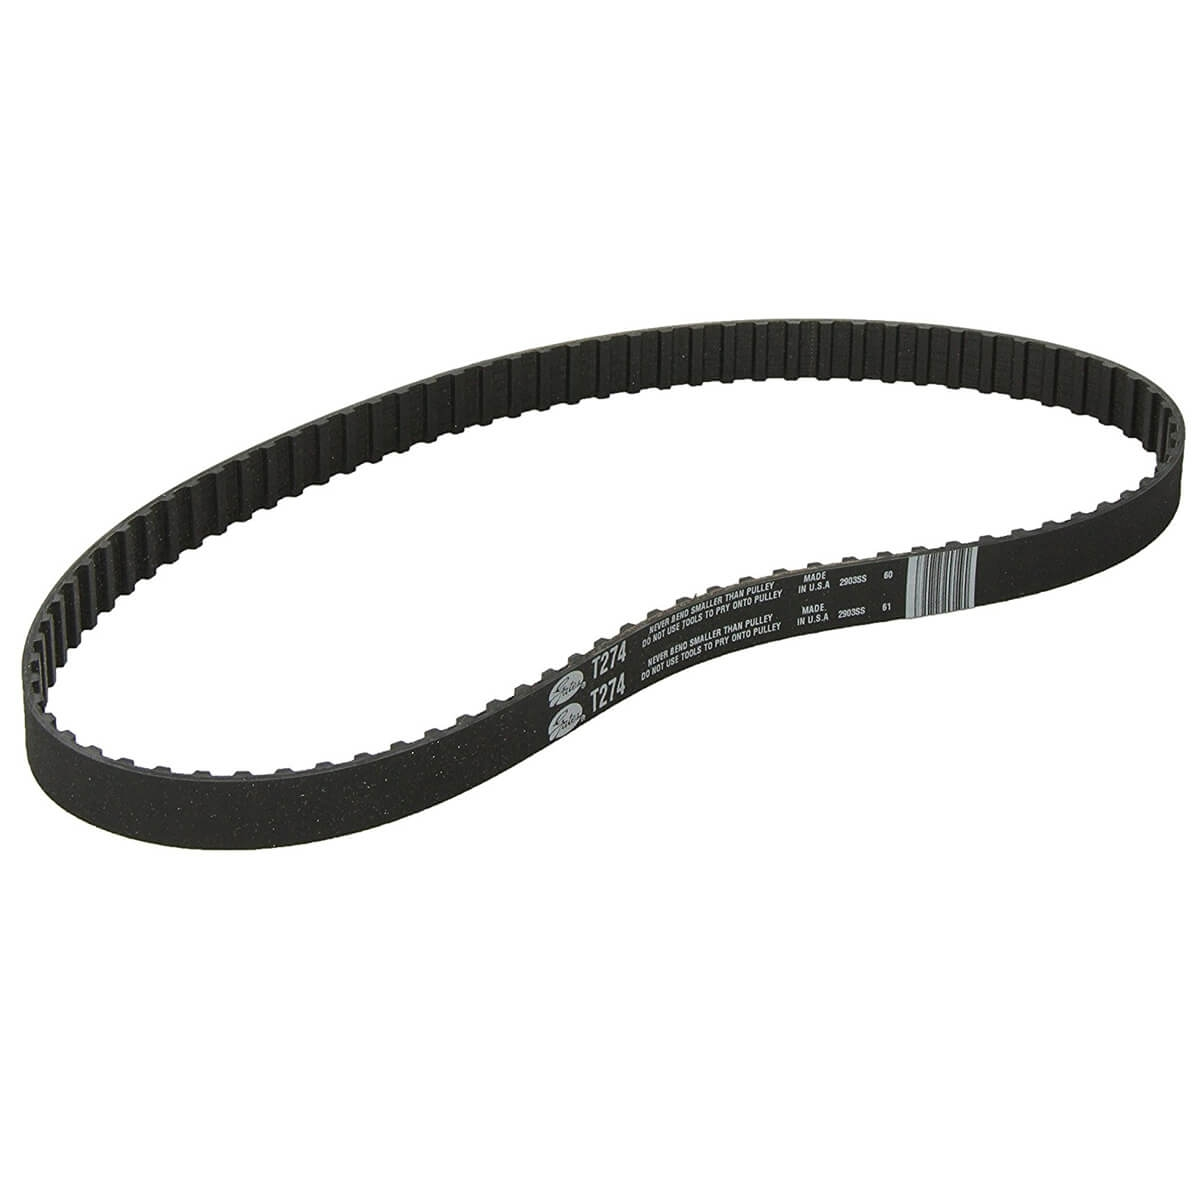 DAIHATSU CUORE Timing Belt